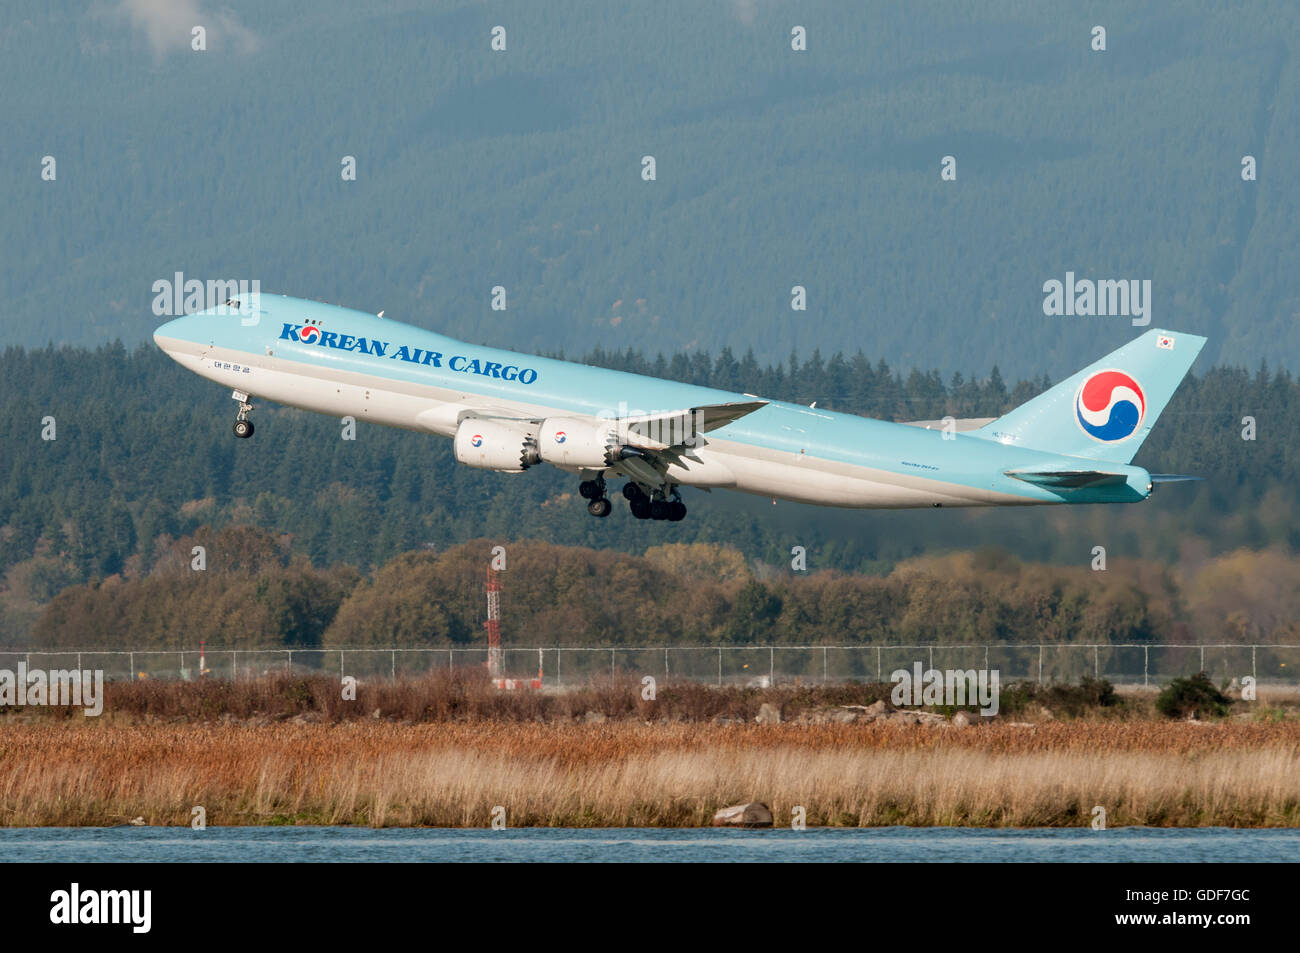 Korean Air Cargo Wide Body Boeing 747-8B5(F) taking off from Vancouver International Airport. - Stock Image